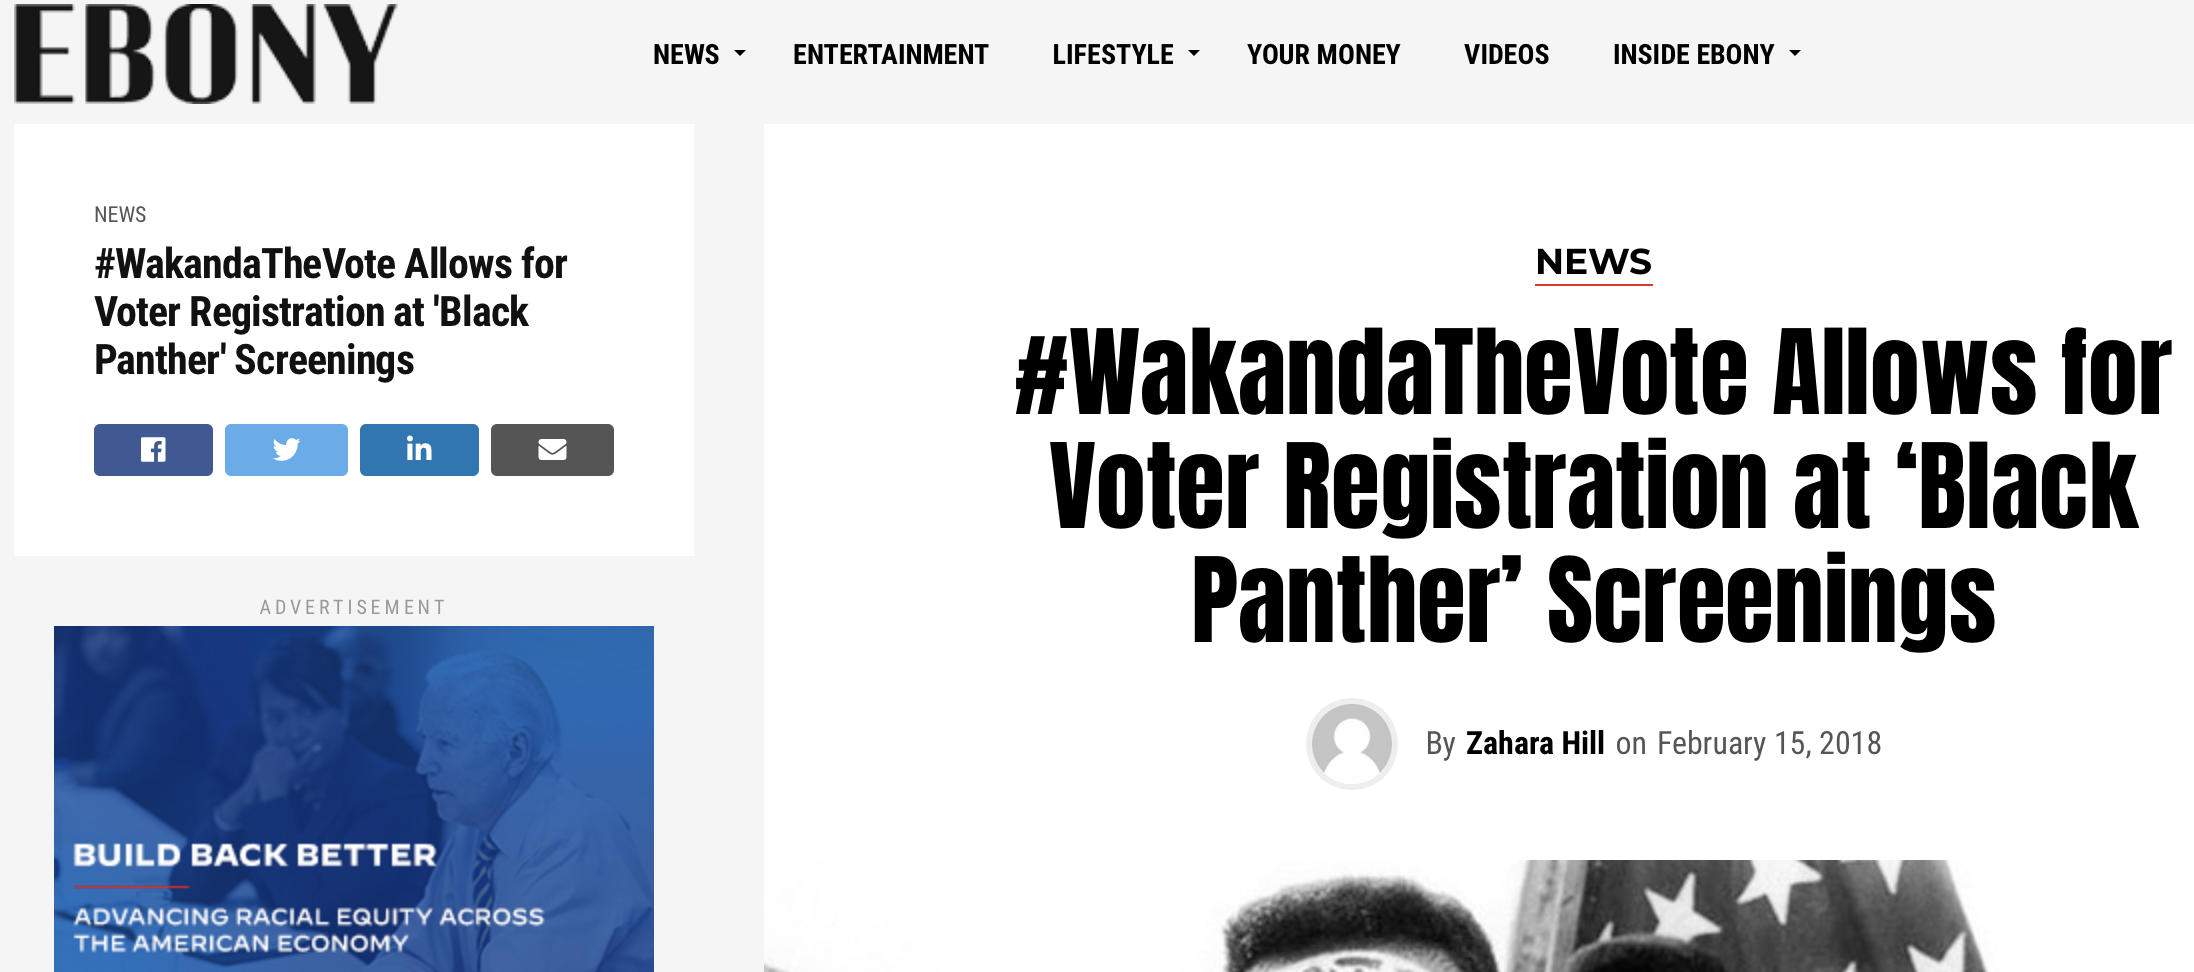 #WakandaTheVote Allows for Voter Registration at 'Black Panther' Screenings